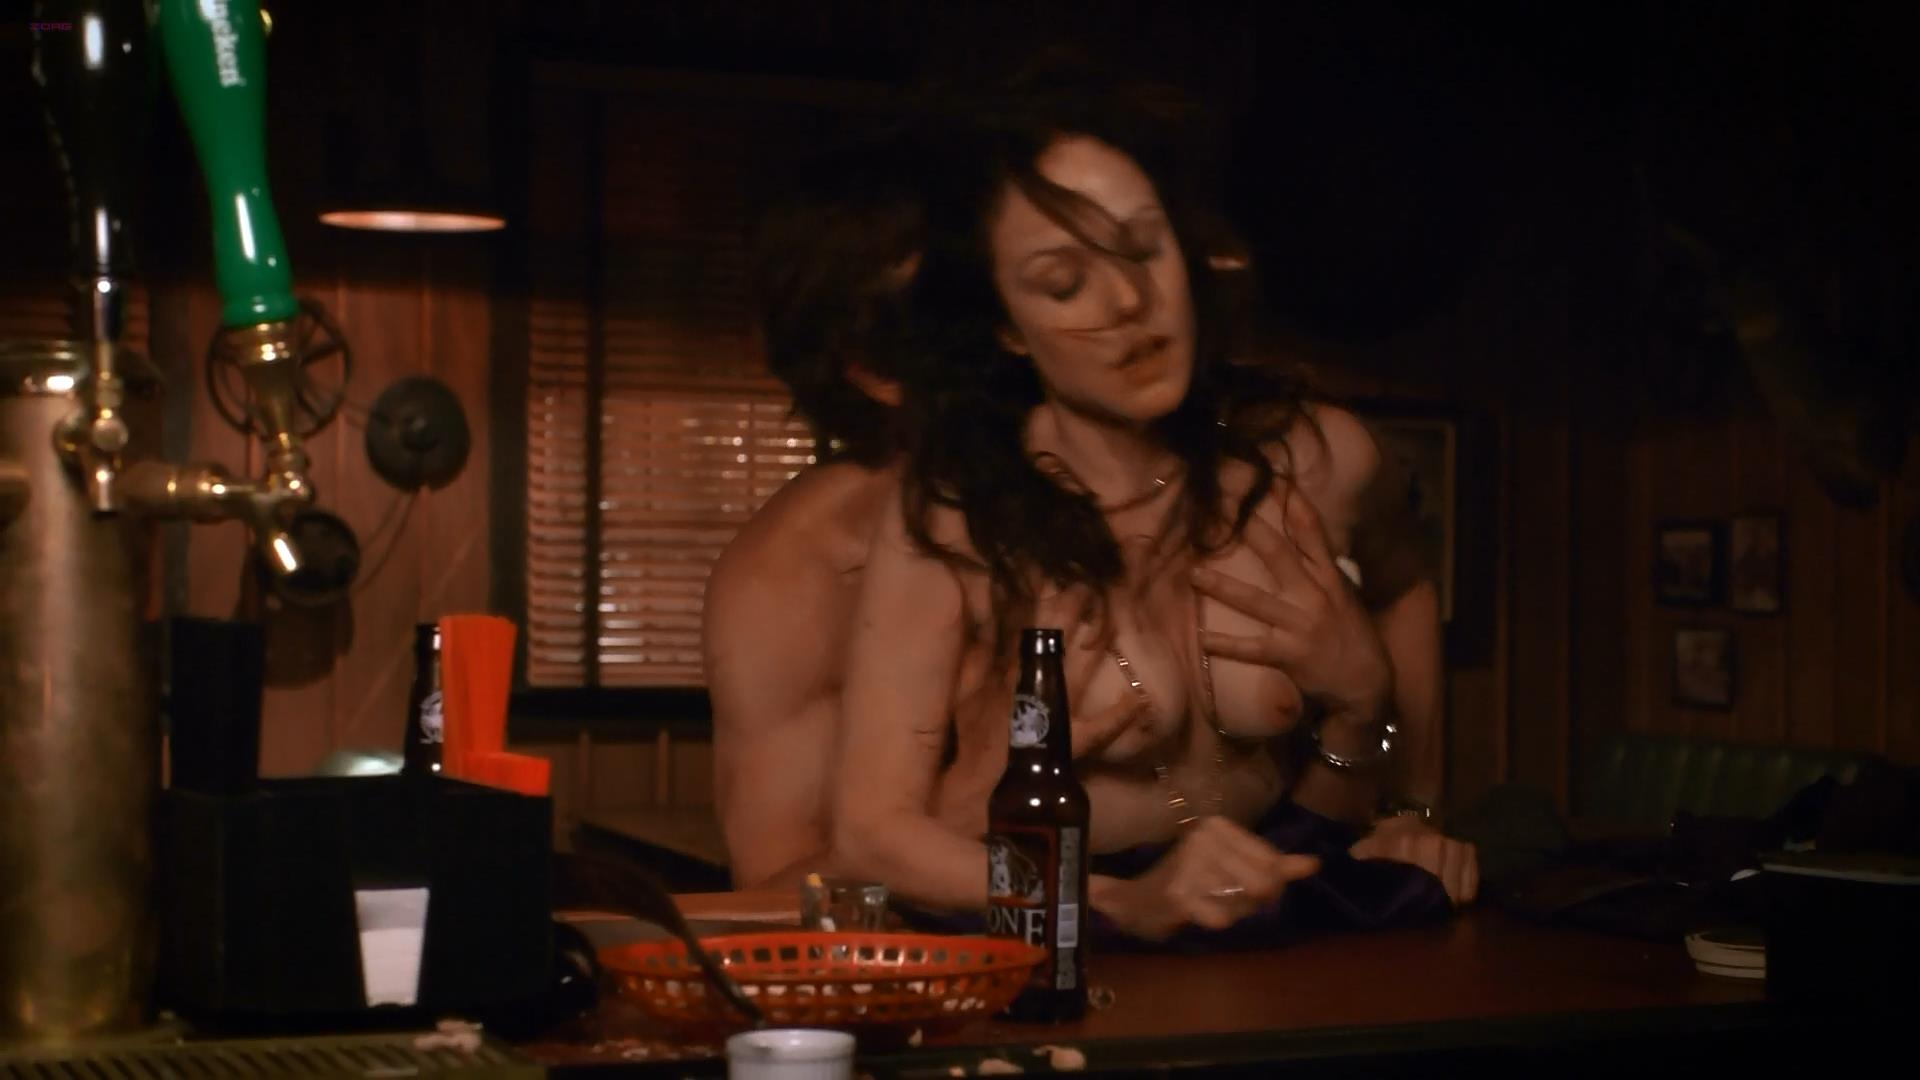 Julie bowen naked weeds